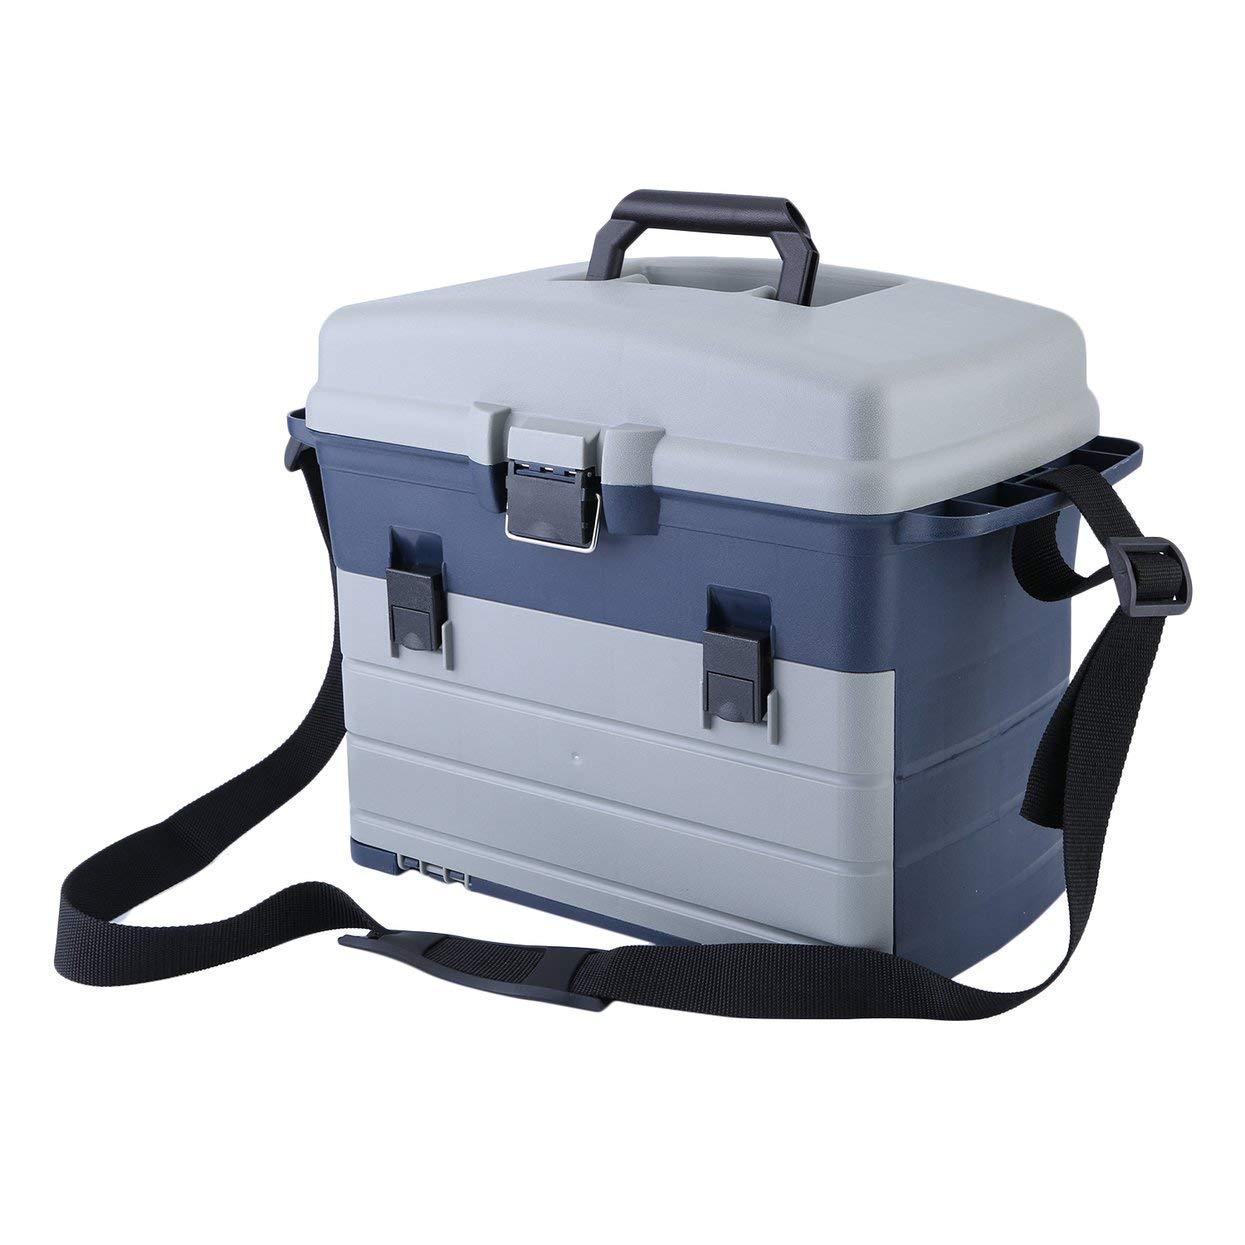 Heavy Duty Fishing Tackle Box 3 Layers Removable Trays Storage Organizer Case Tool Fishing Accessories Lures Bait Storage Box